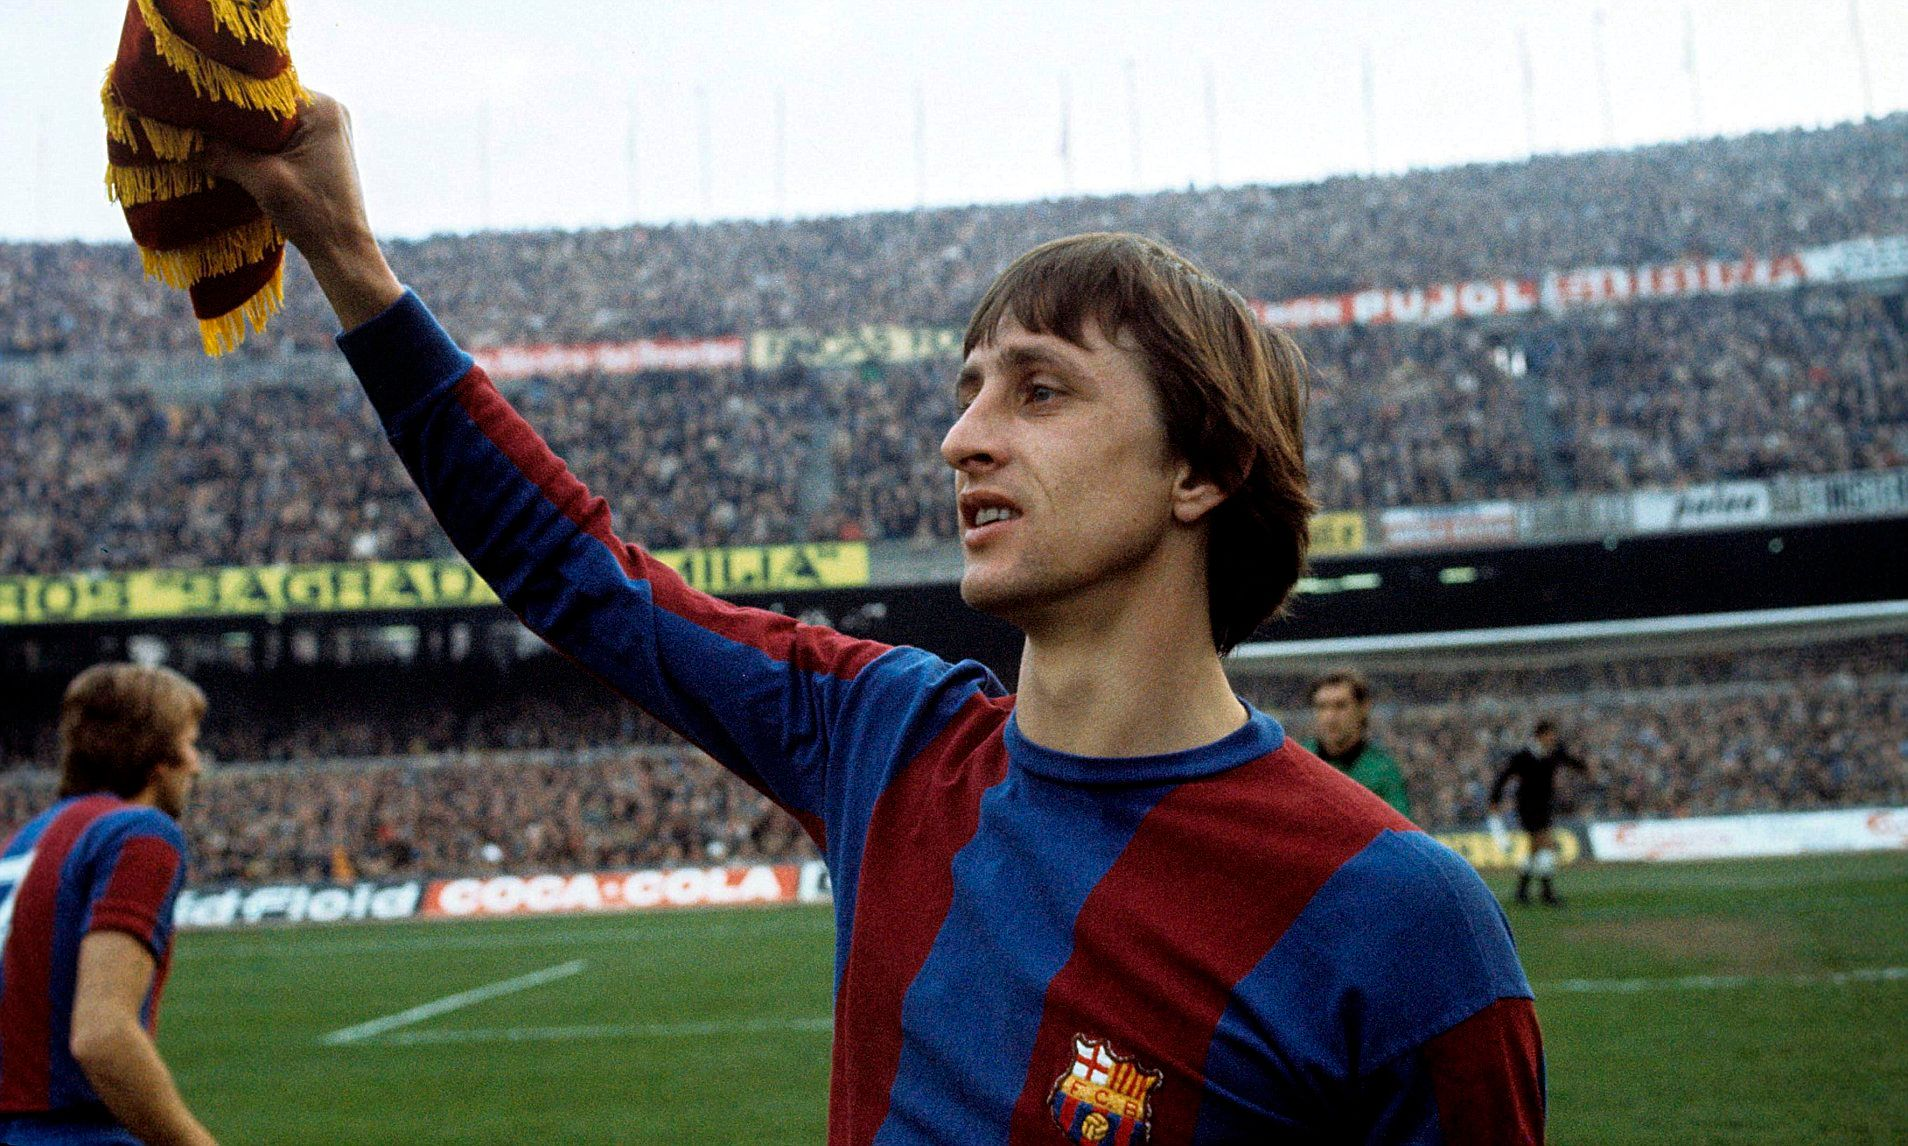 Football Films for the Lockdown - Johan Cruyff